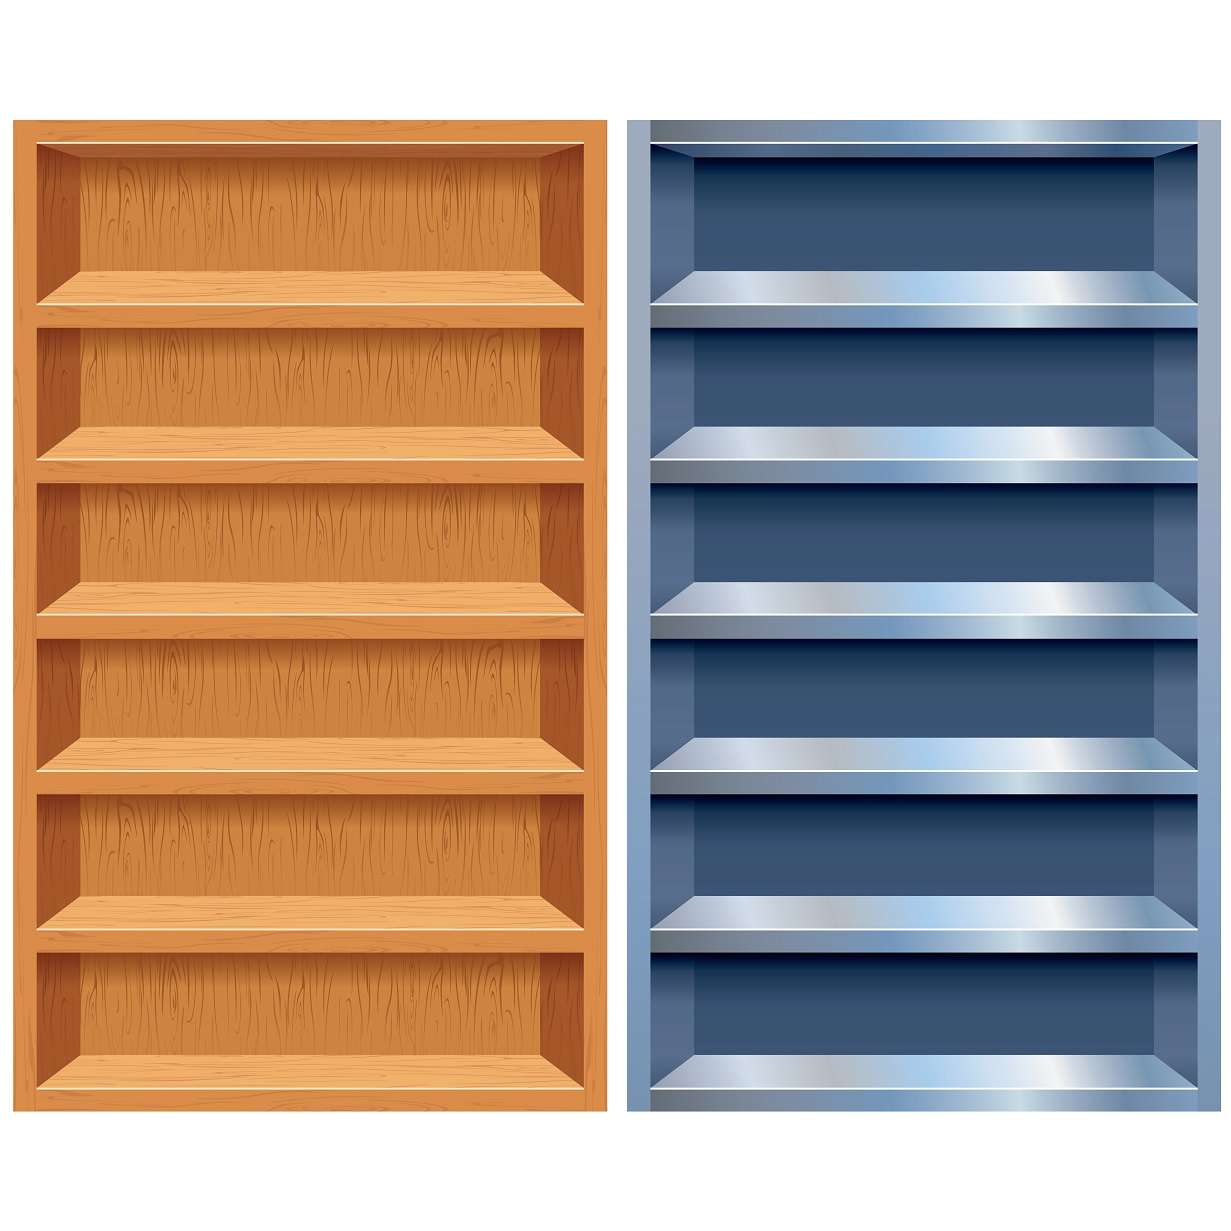 Empty Bookshelf Wallpaper - WallpaperSafari